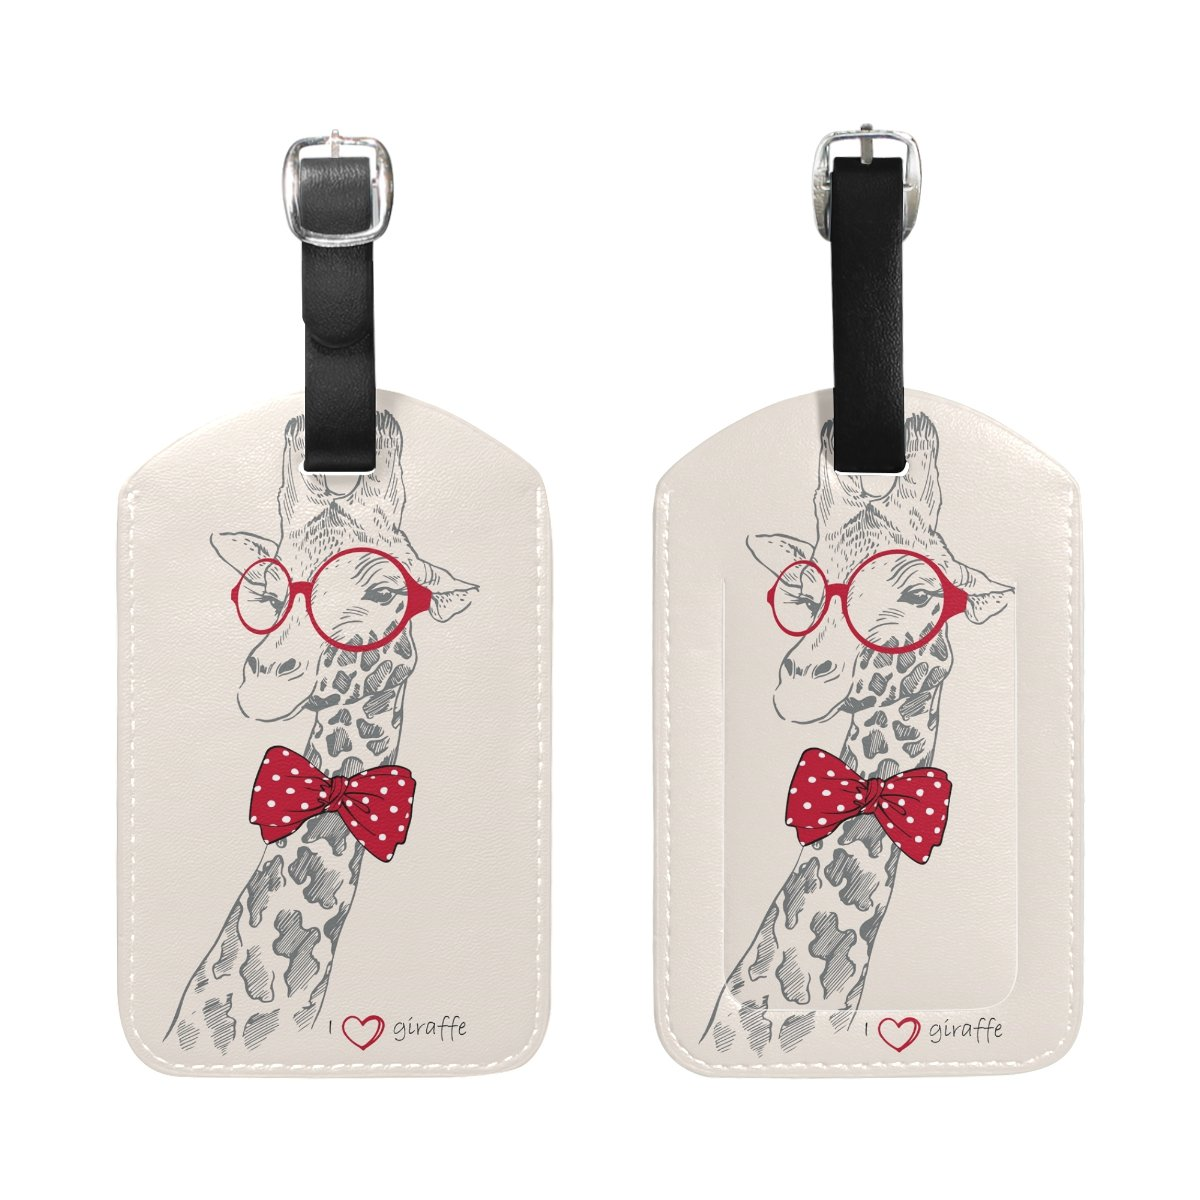 Home & Kitchen Aumimi Cartoon Butterfly Travel Luggage Tags 2pcs